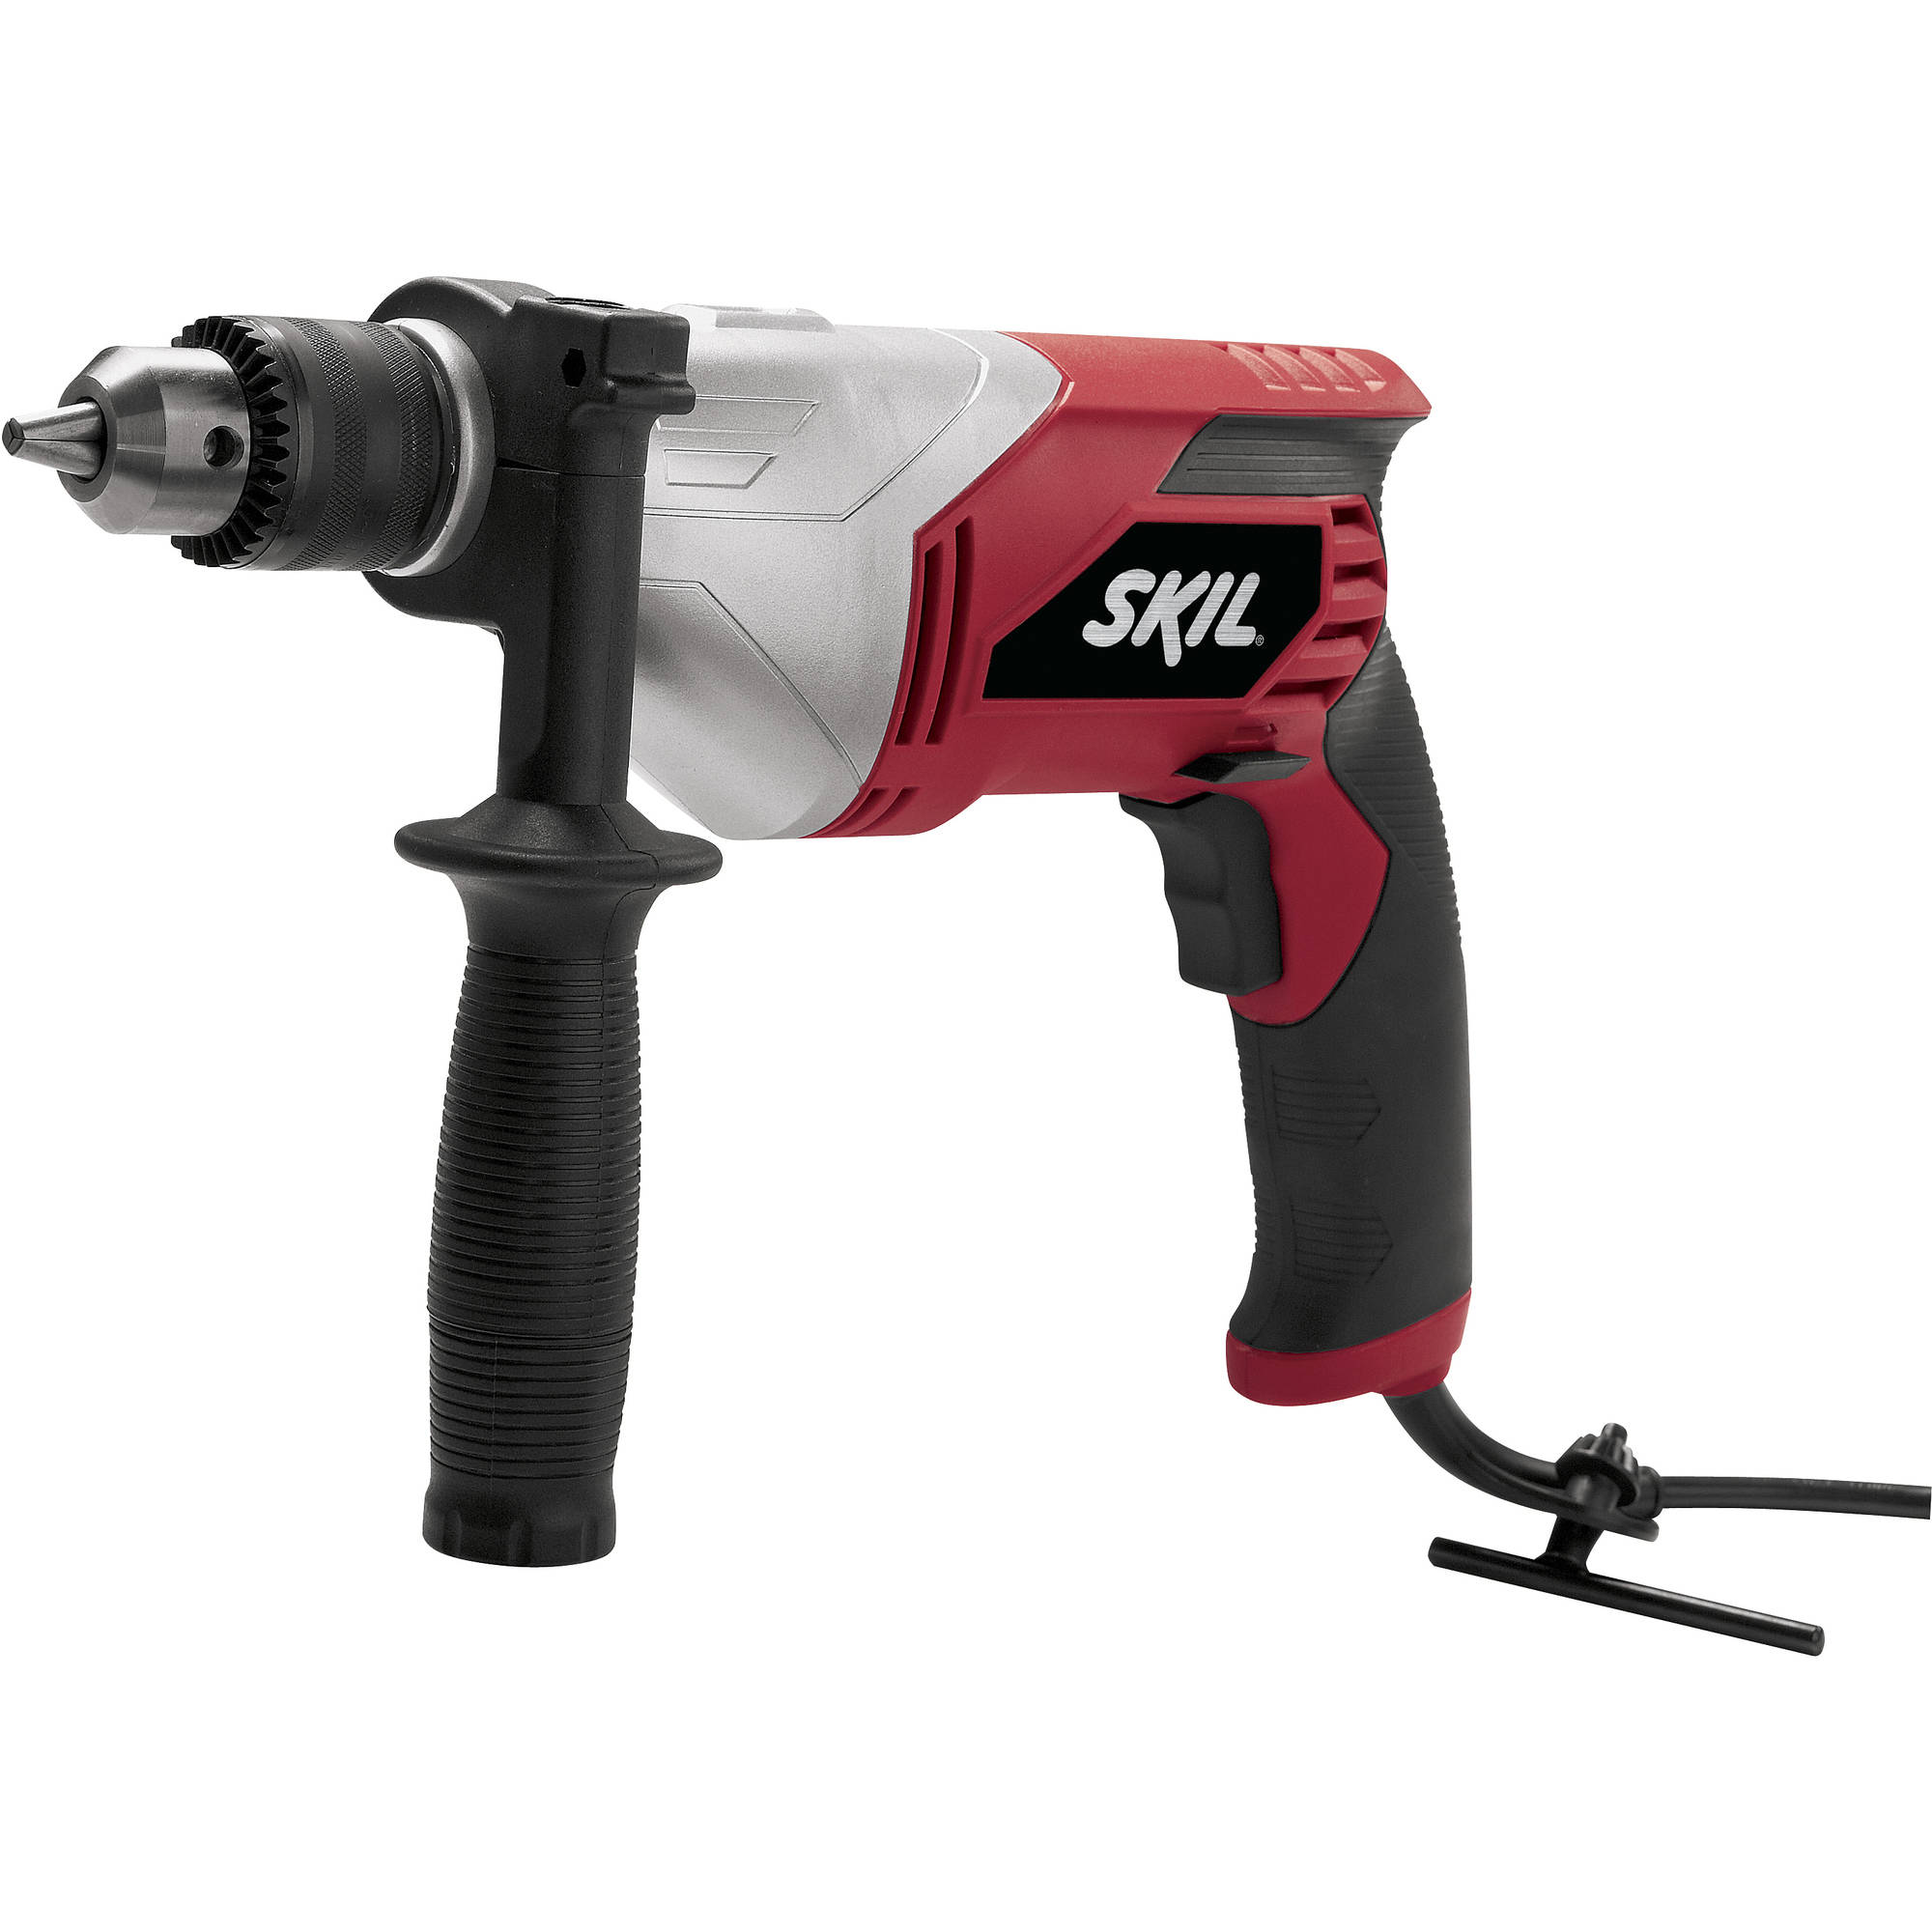 "SKIL 1/2"" 7A Corded Drill"